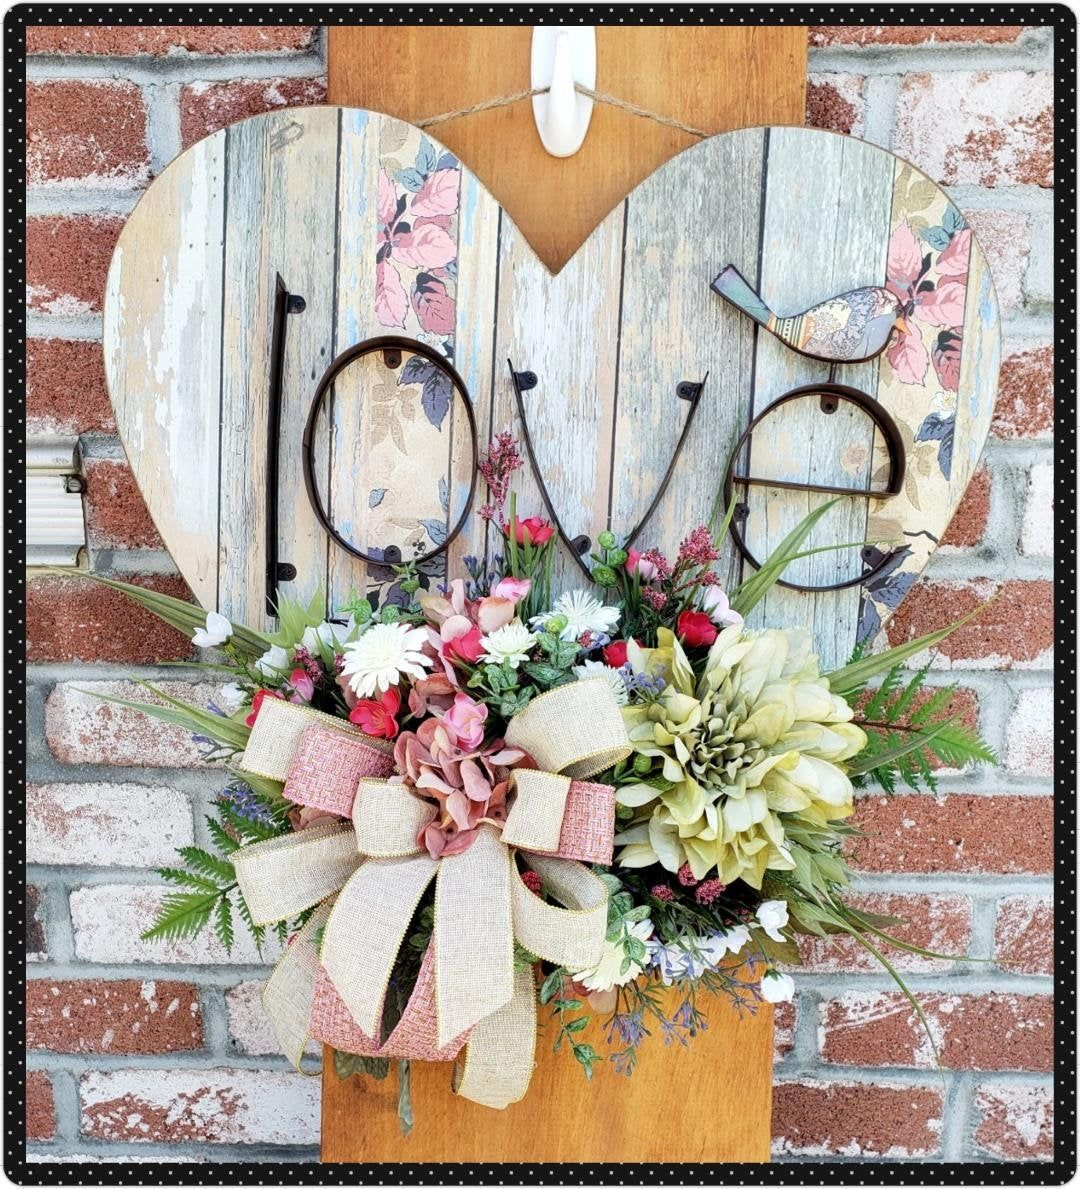 Large Wooden Heart Wall Decor Shabby Chic Floral Arrangement Distressed Love Sign Love Wall Art Hanging Heart Bedroom Decoration Heart Wall Decor Simple Wall Decor Hanging Hearts